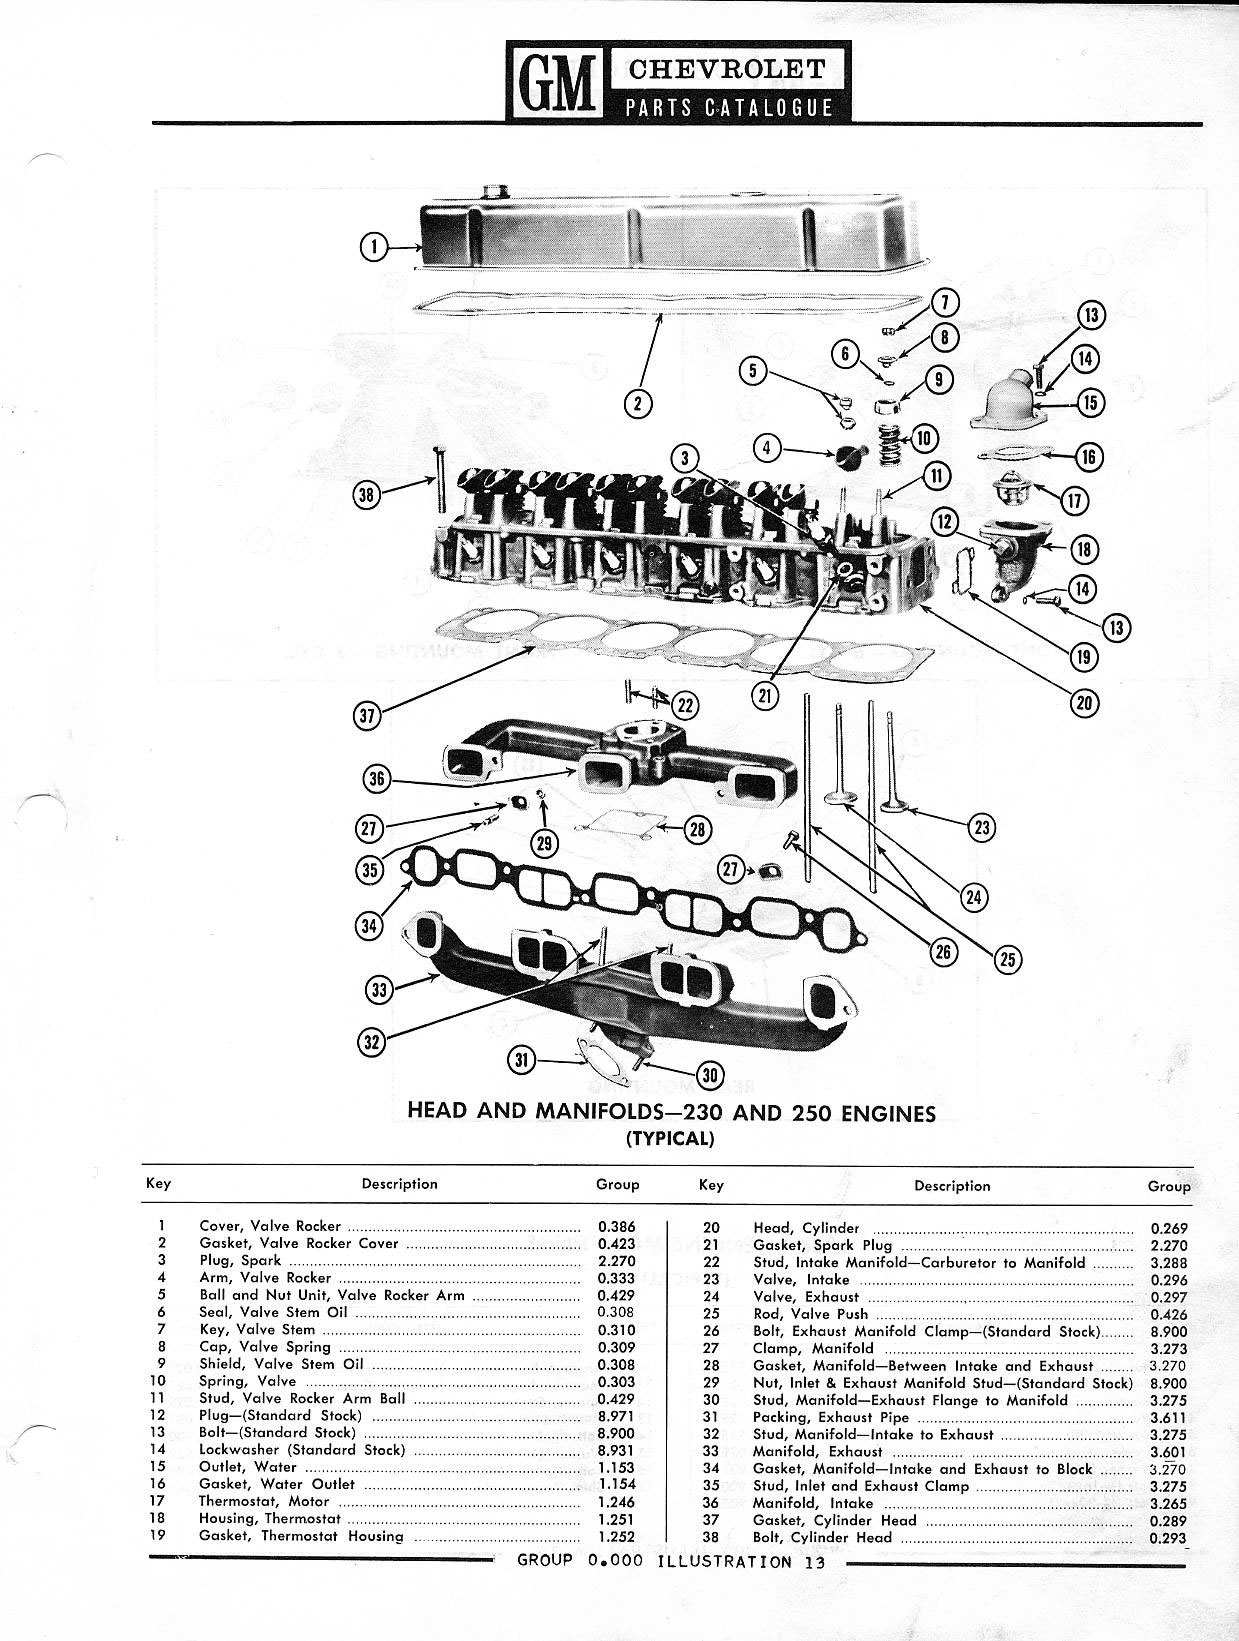 1955 Ford Thunderbird Vin Number Locations as well Simple Engine Diagram also 58 Chevy Parts Catalog further 1959 Corvette Rear Turn Signal Wiring Diagram in addition 1957 Plymouth Wiring Harness. on 1958 chevy impala engine